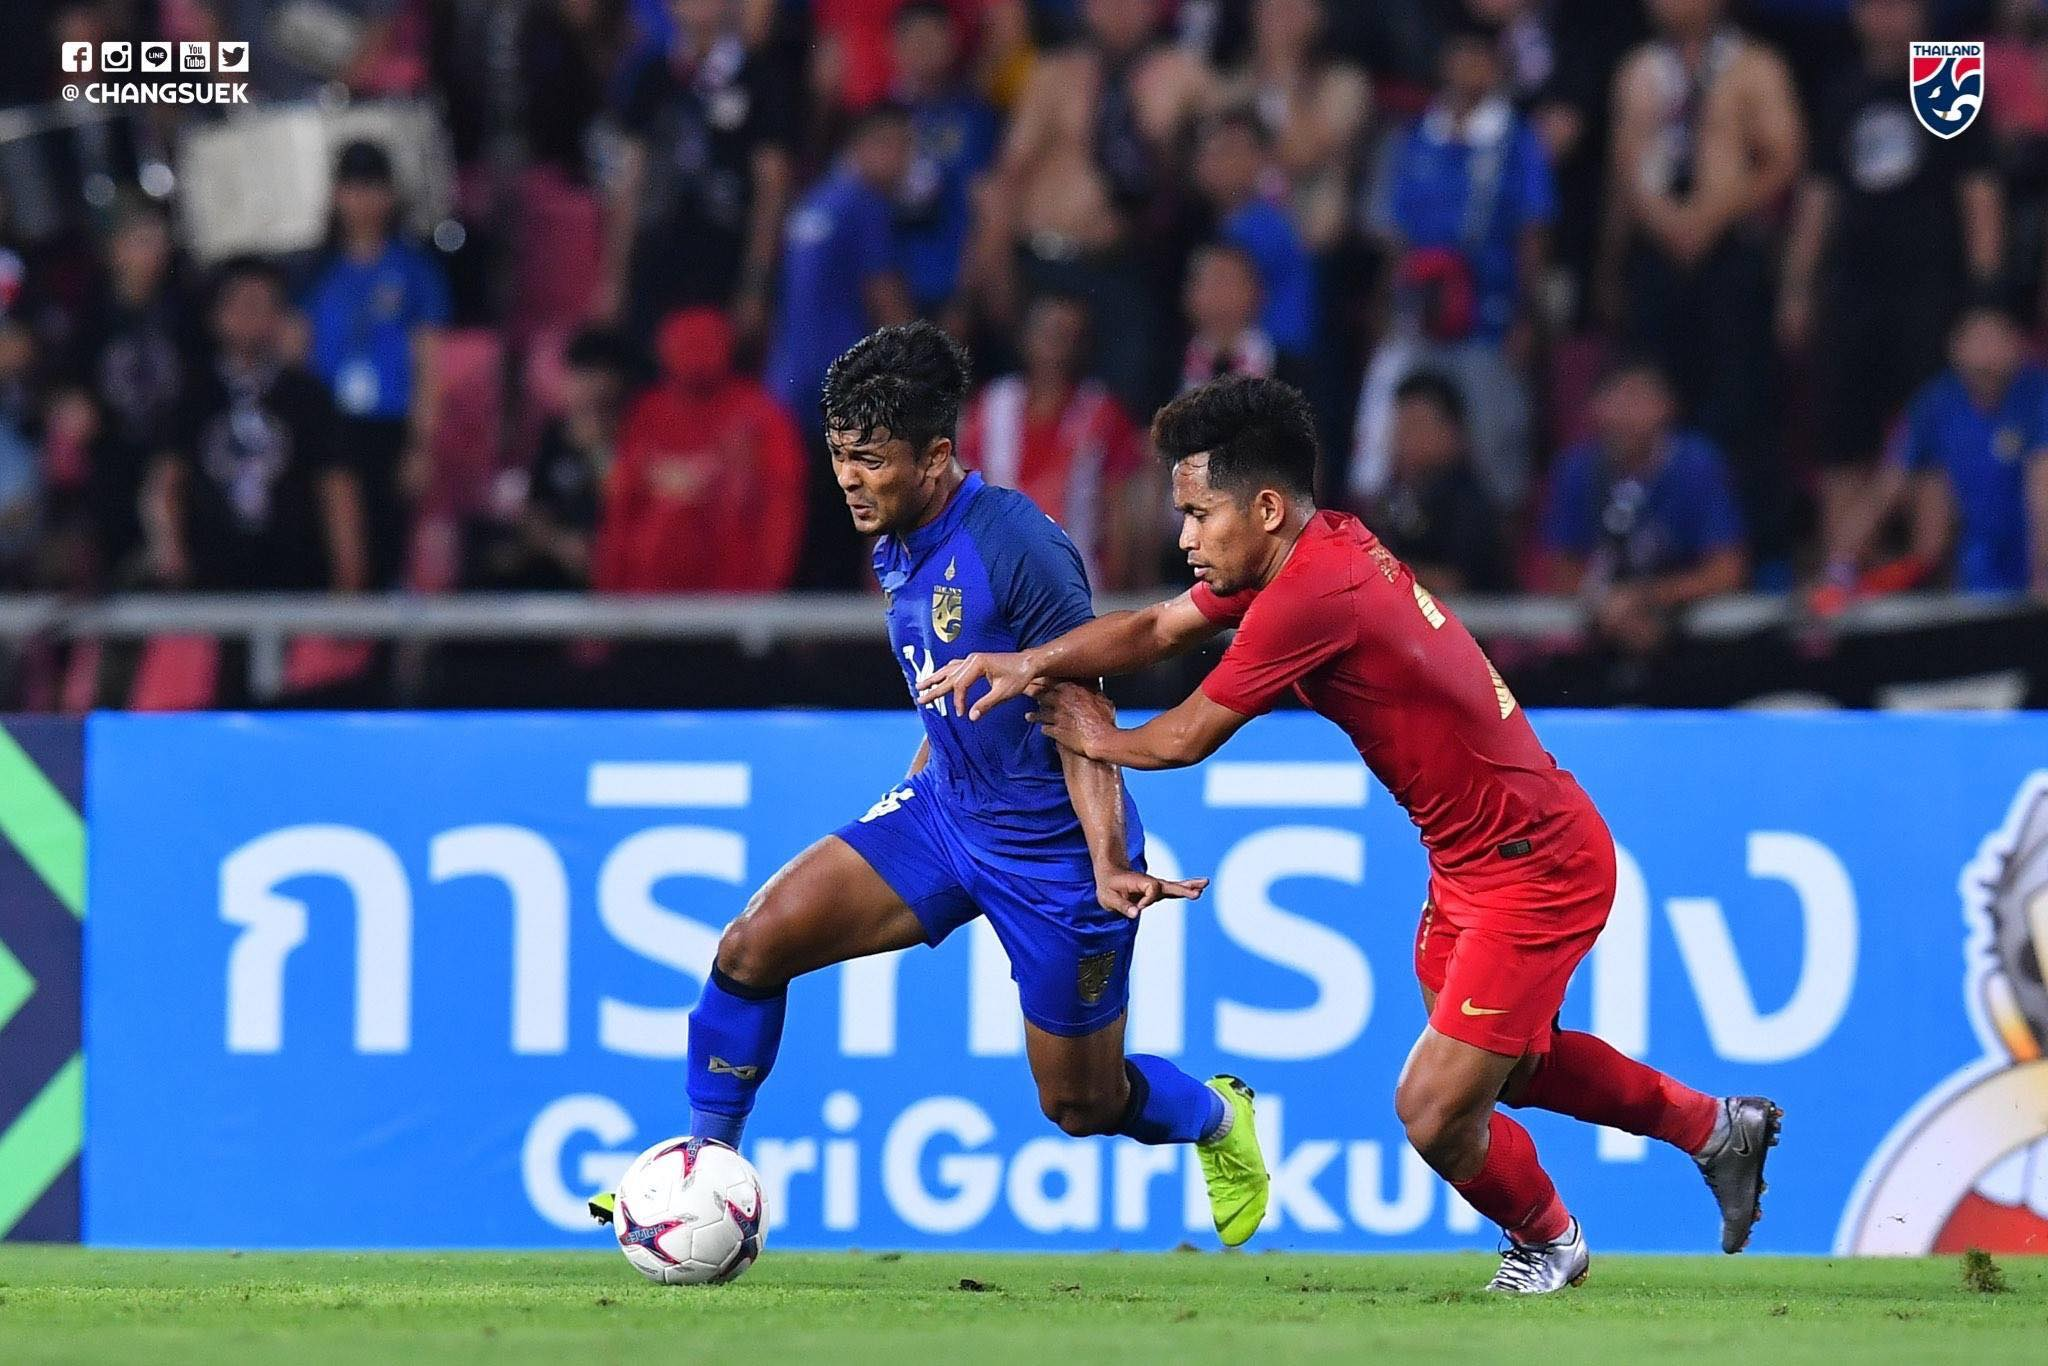 Thailand 4-2 Indonesia – The View from Thailand